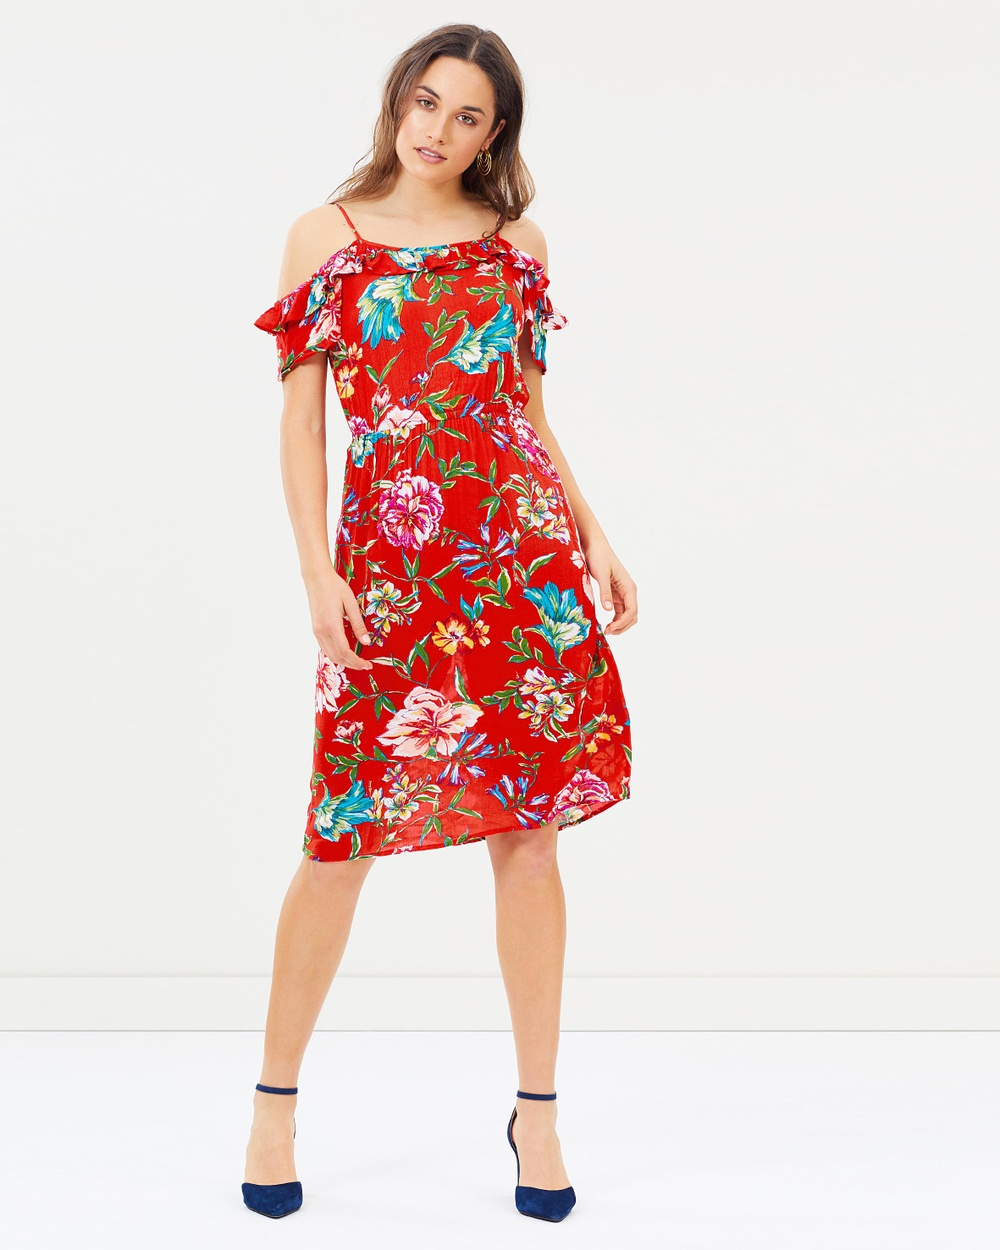 Dorothy Perkins Floral Cap Sleeve Frill Midi Dress Printed Dresses Red Floral Cap Sleeve Frill Midi Dress